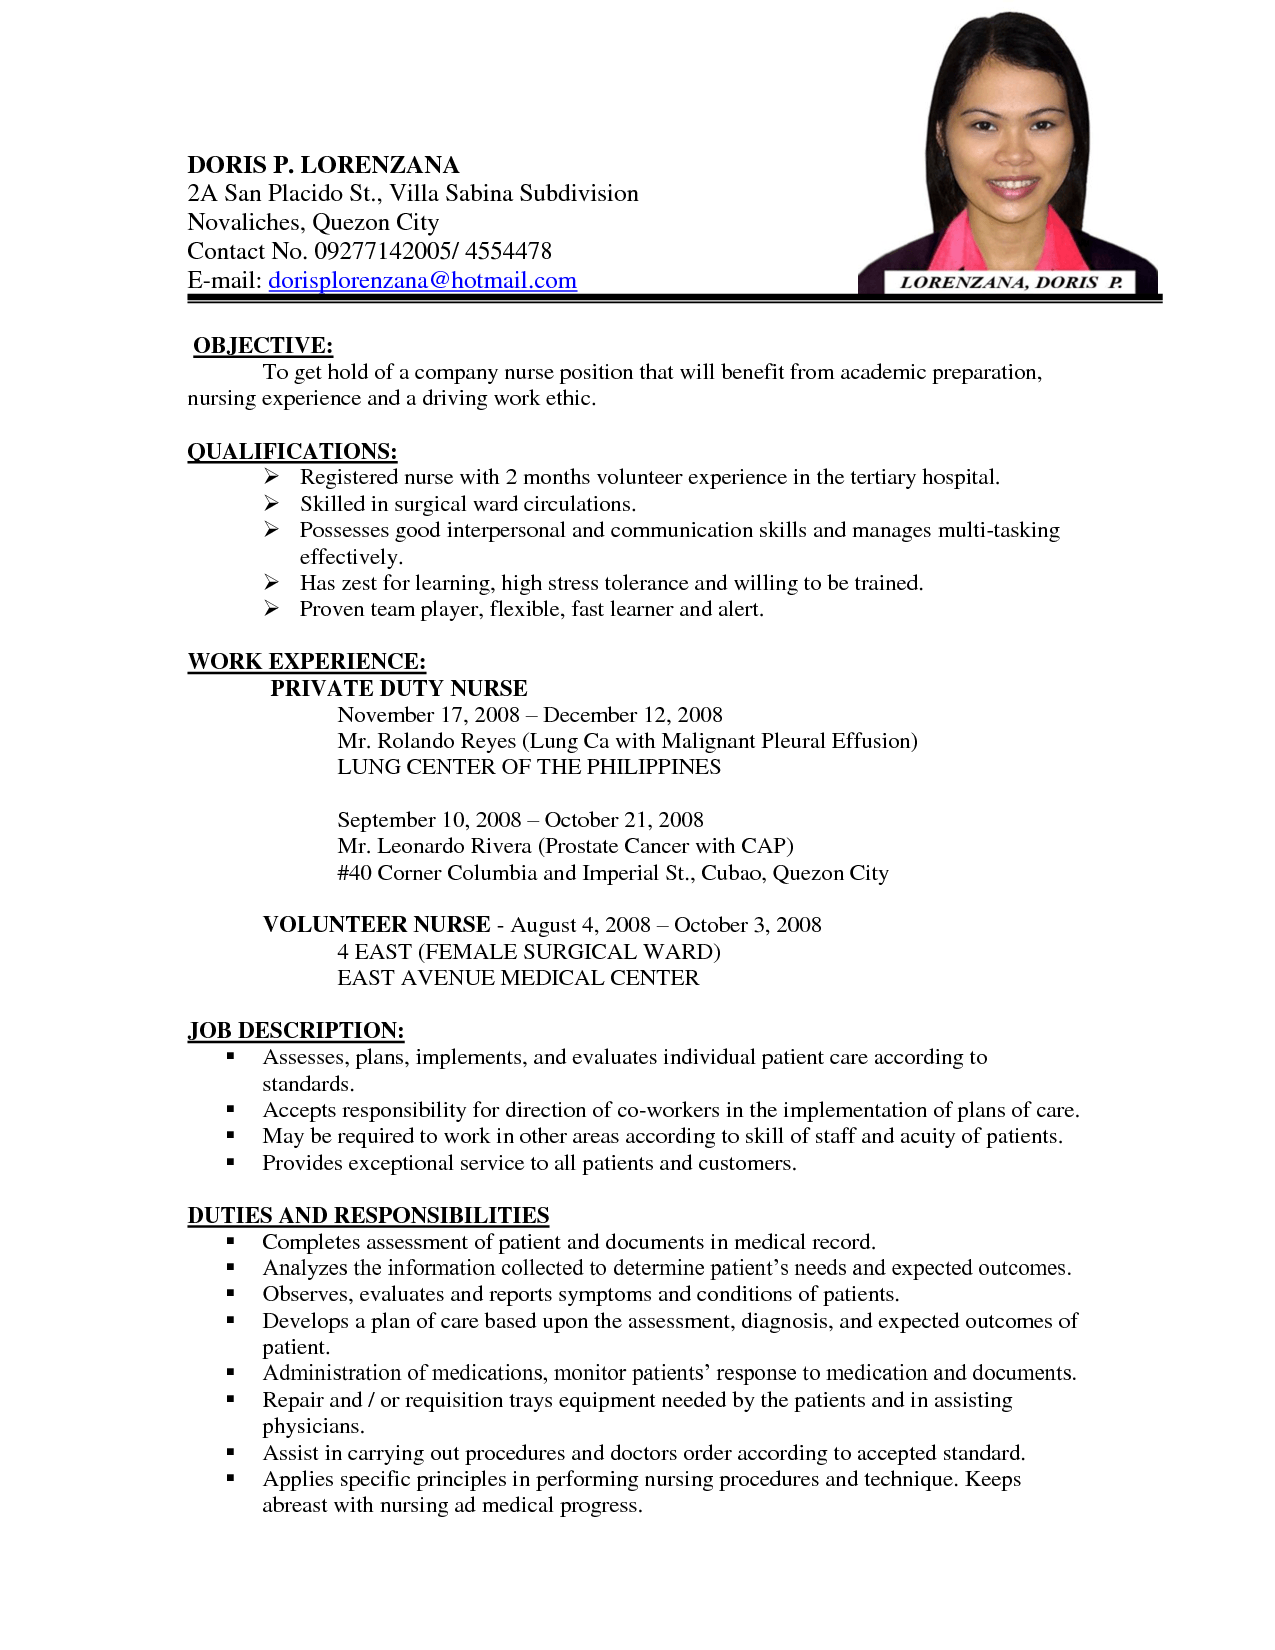 Best Resume Template To Use Image Result For Curriculum Vitae Format For A Nurse  Card